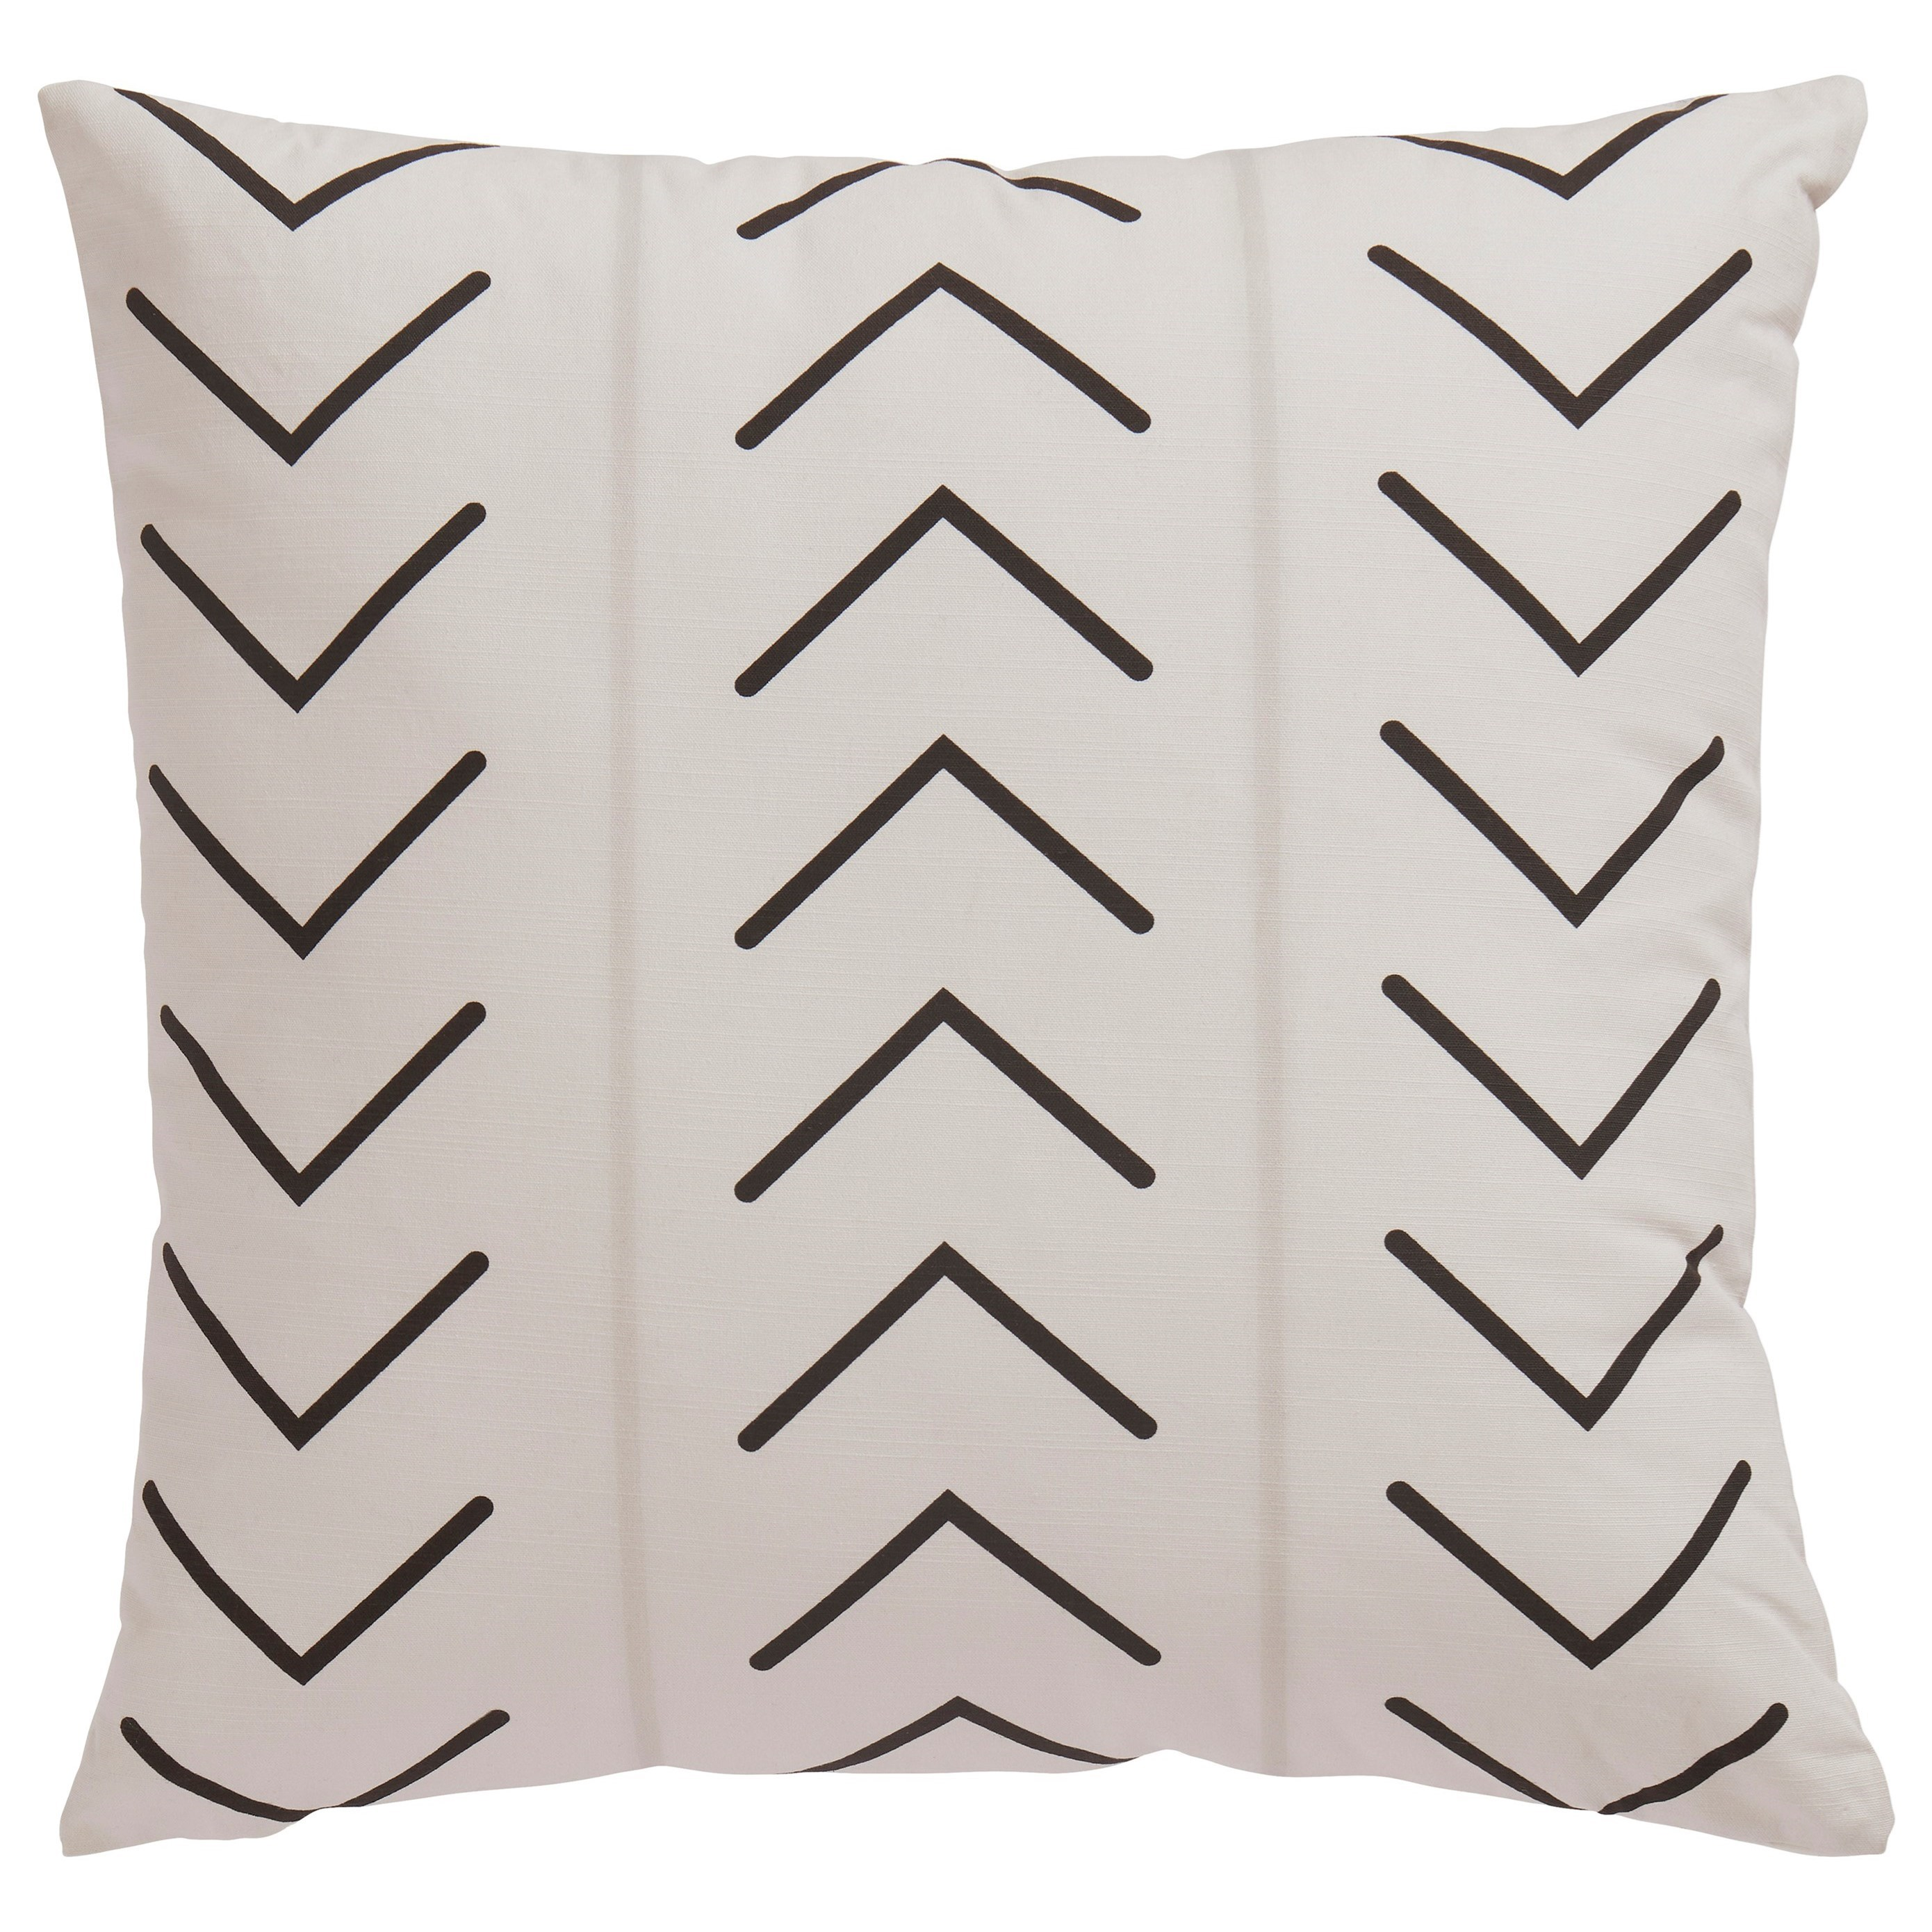 Pillows Kallan White/Black Pillow by Signature Design by Ashley at Furniture Barn